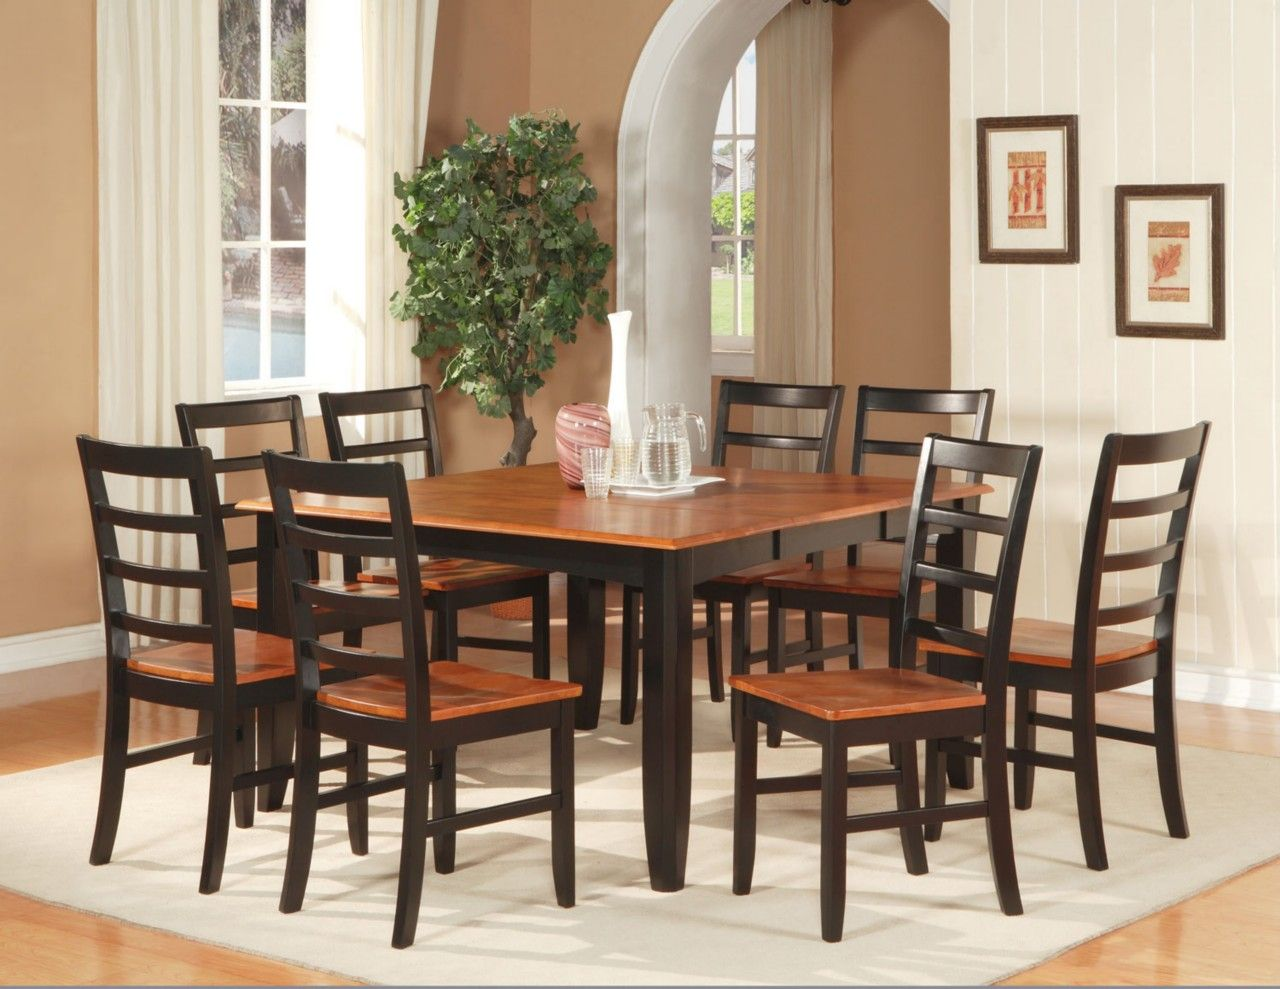 Dining Room Table Set Entrancing Dining Room Tables  Valuable Information To Get To Know More Design Inspiration